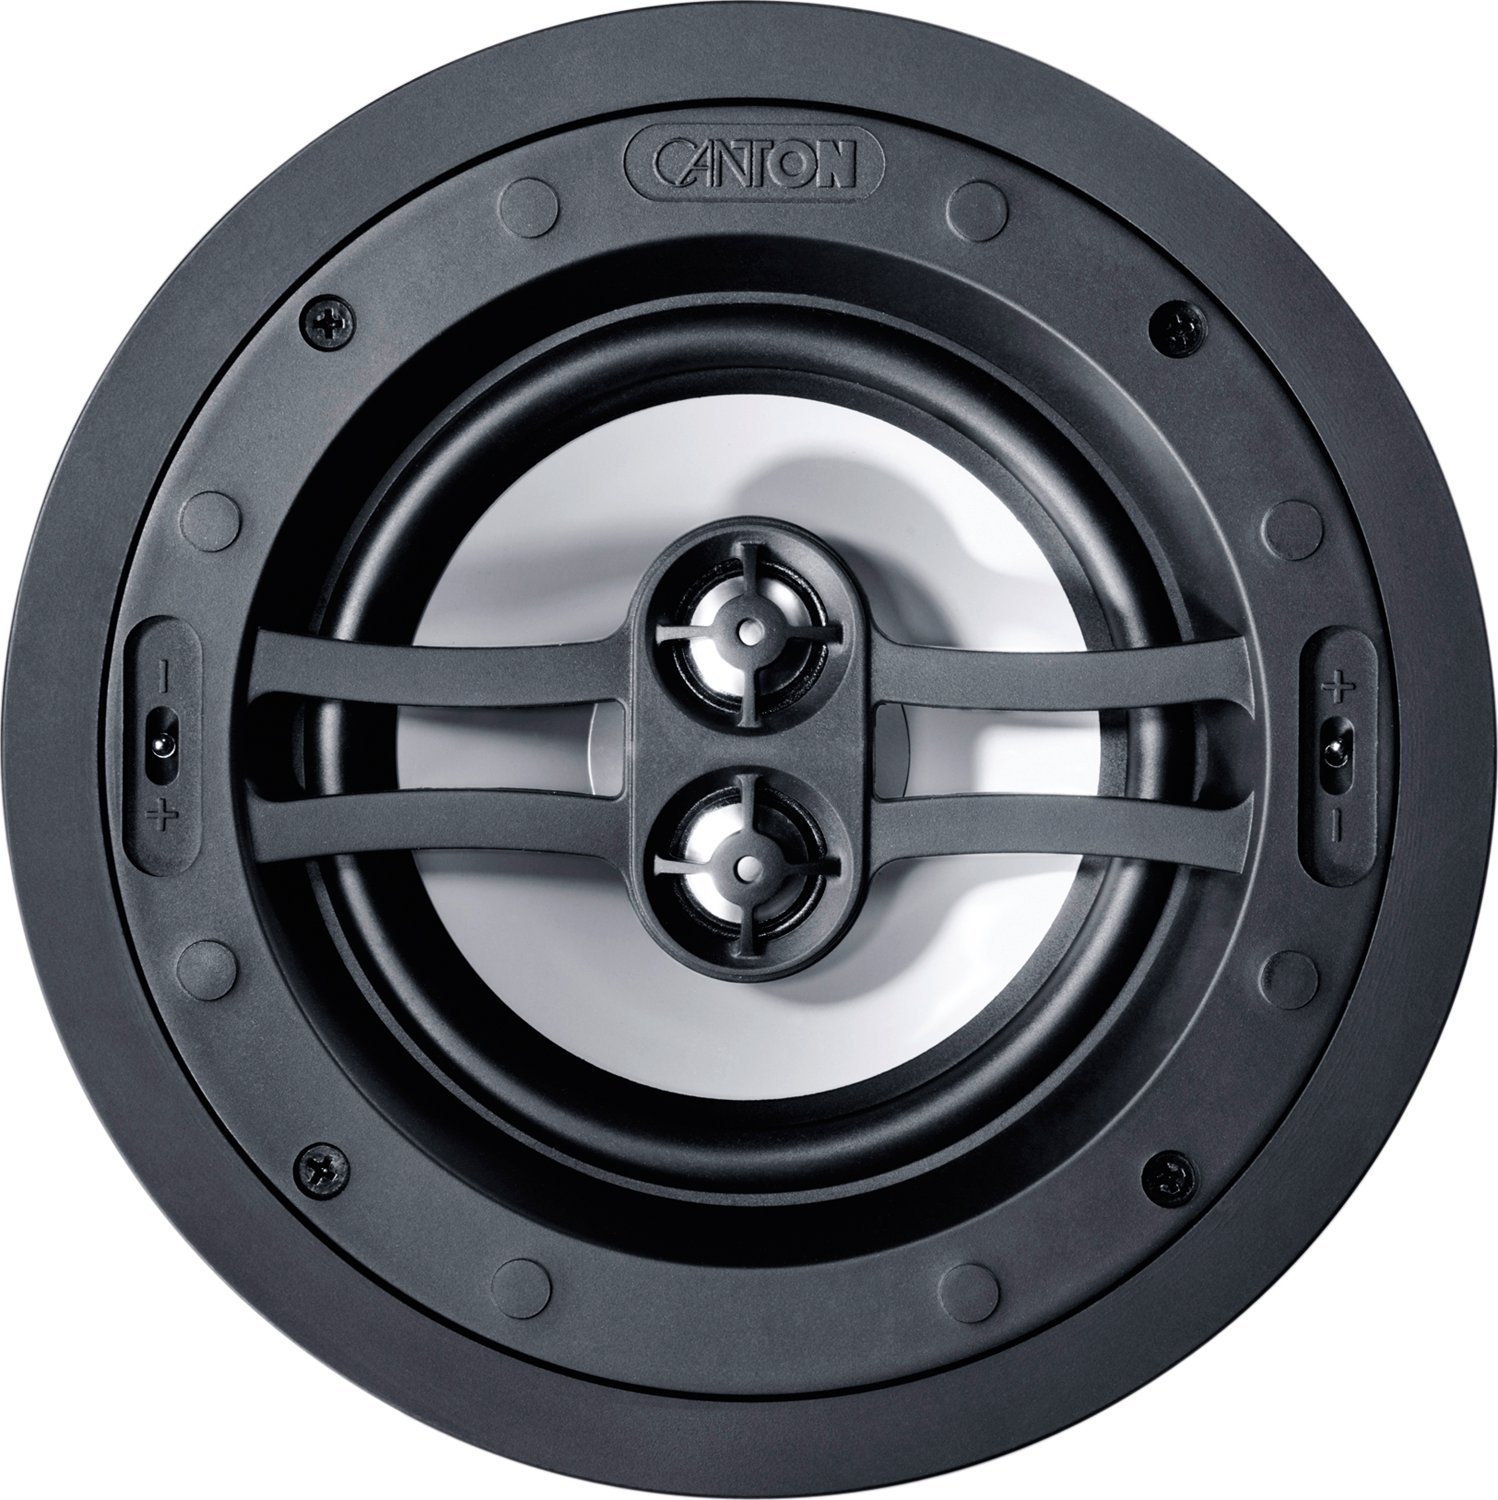 965DT 6.5'' 2-Way Stereo In-Ceiling Speaker Each by Canton